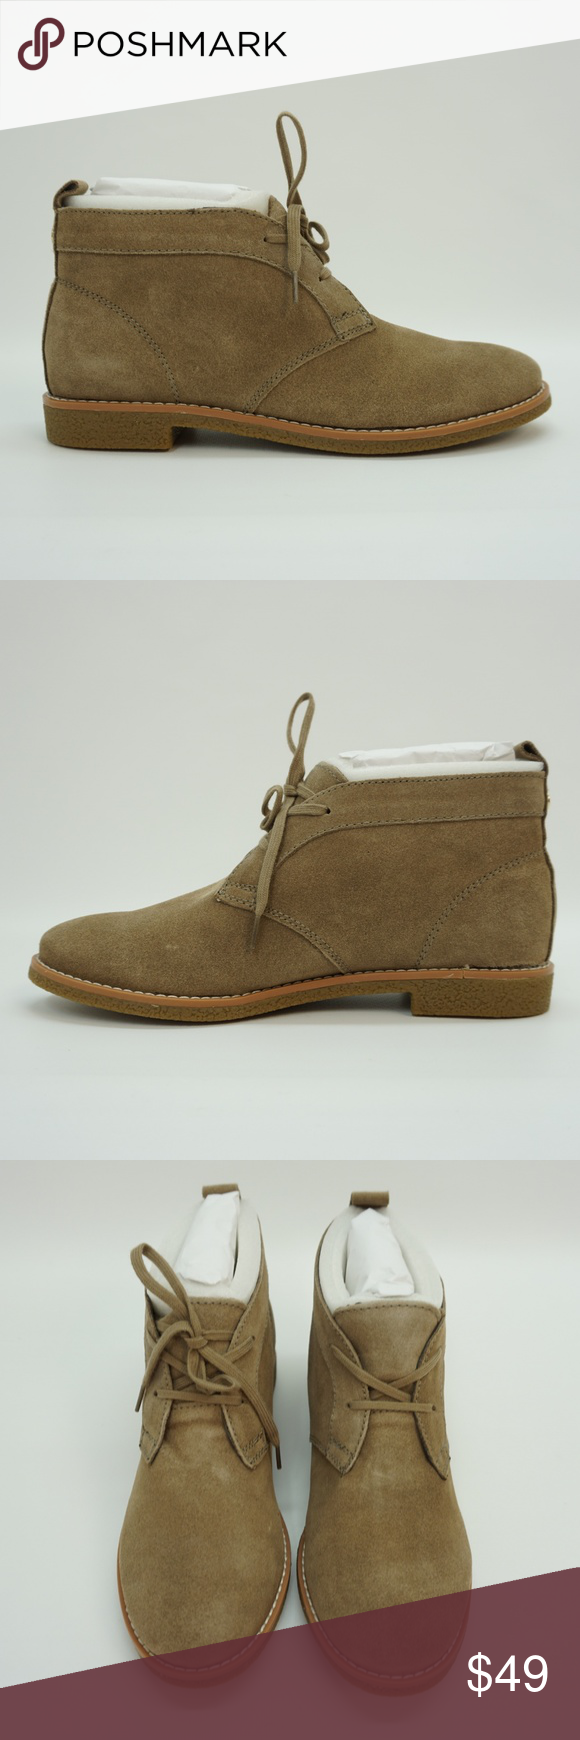 635fd1b6d NEW Tommy Hilfiger Lace Up Chukka Suede Ankle Boot   New in Box - review